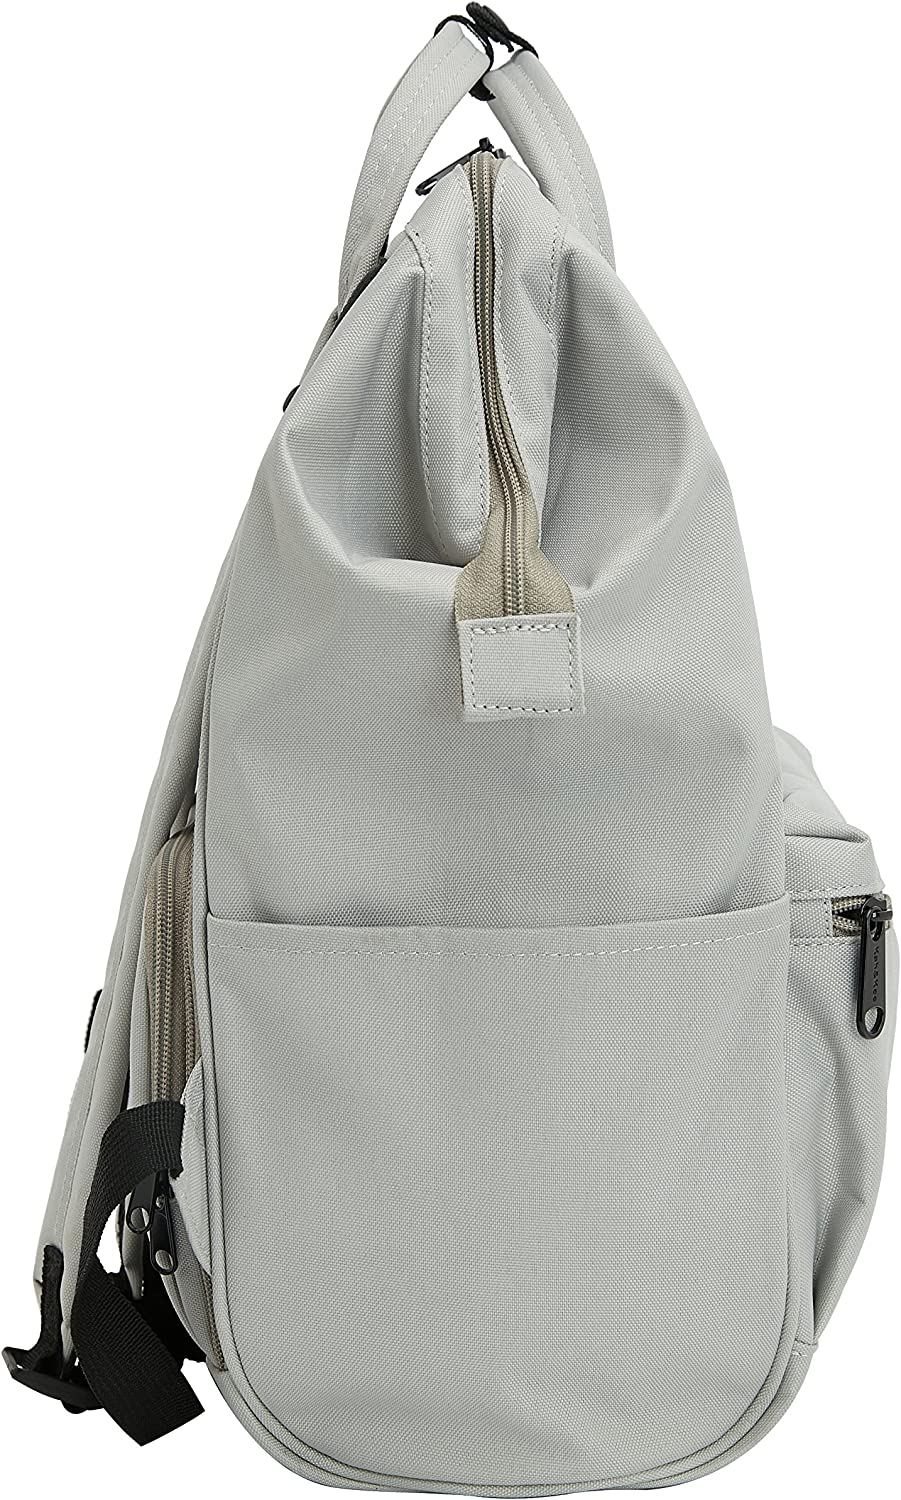 Kah/&Kee Sac /à Dos imperm/éable Ordinateur antivol College Laptop Femme Homme Gris Clair, Grand